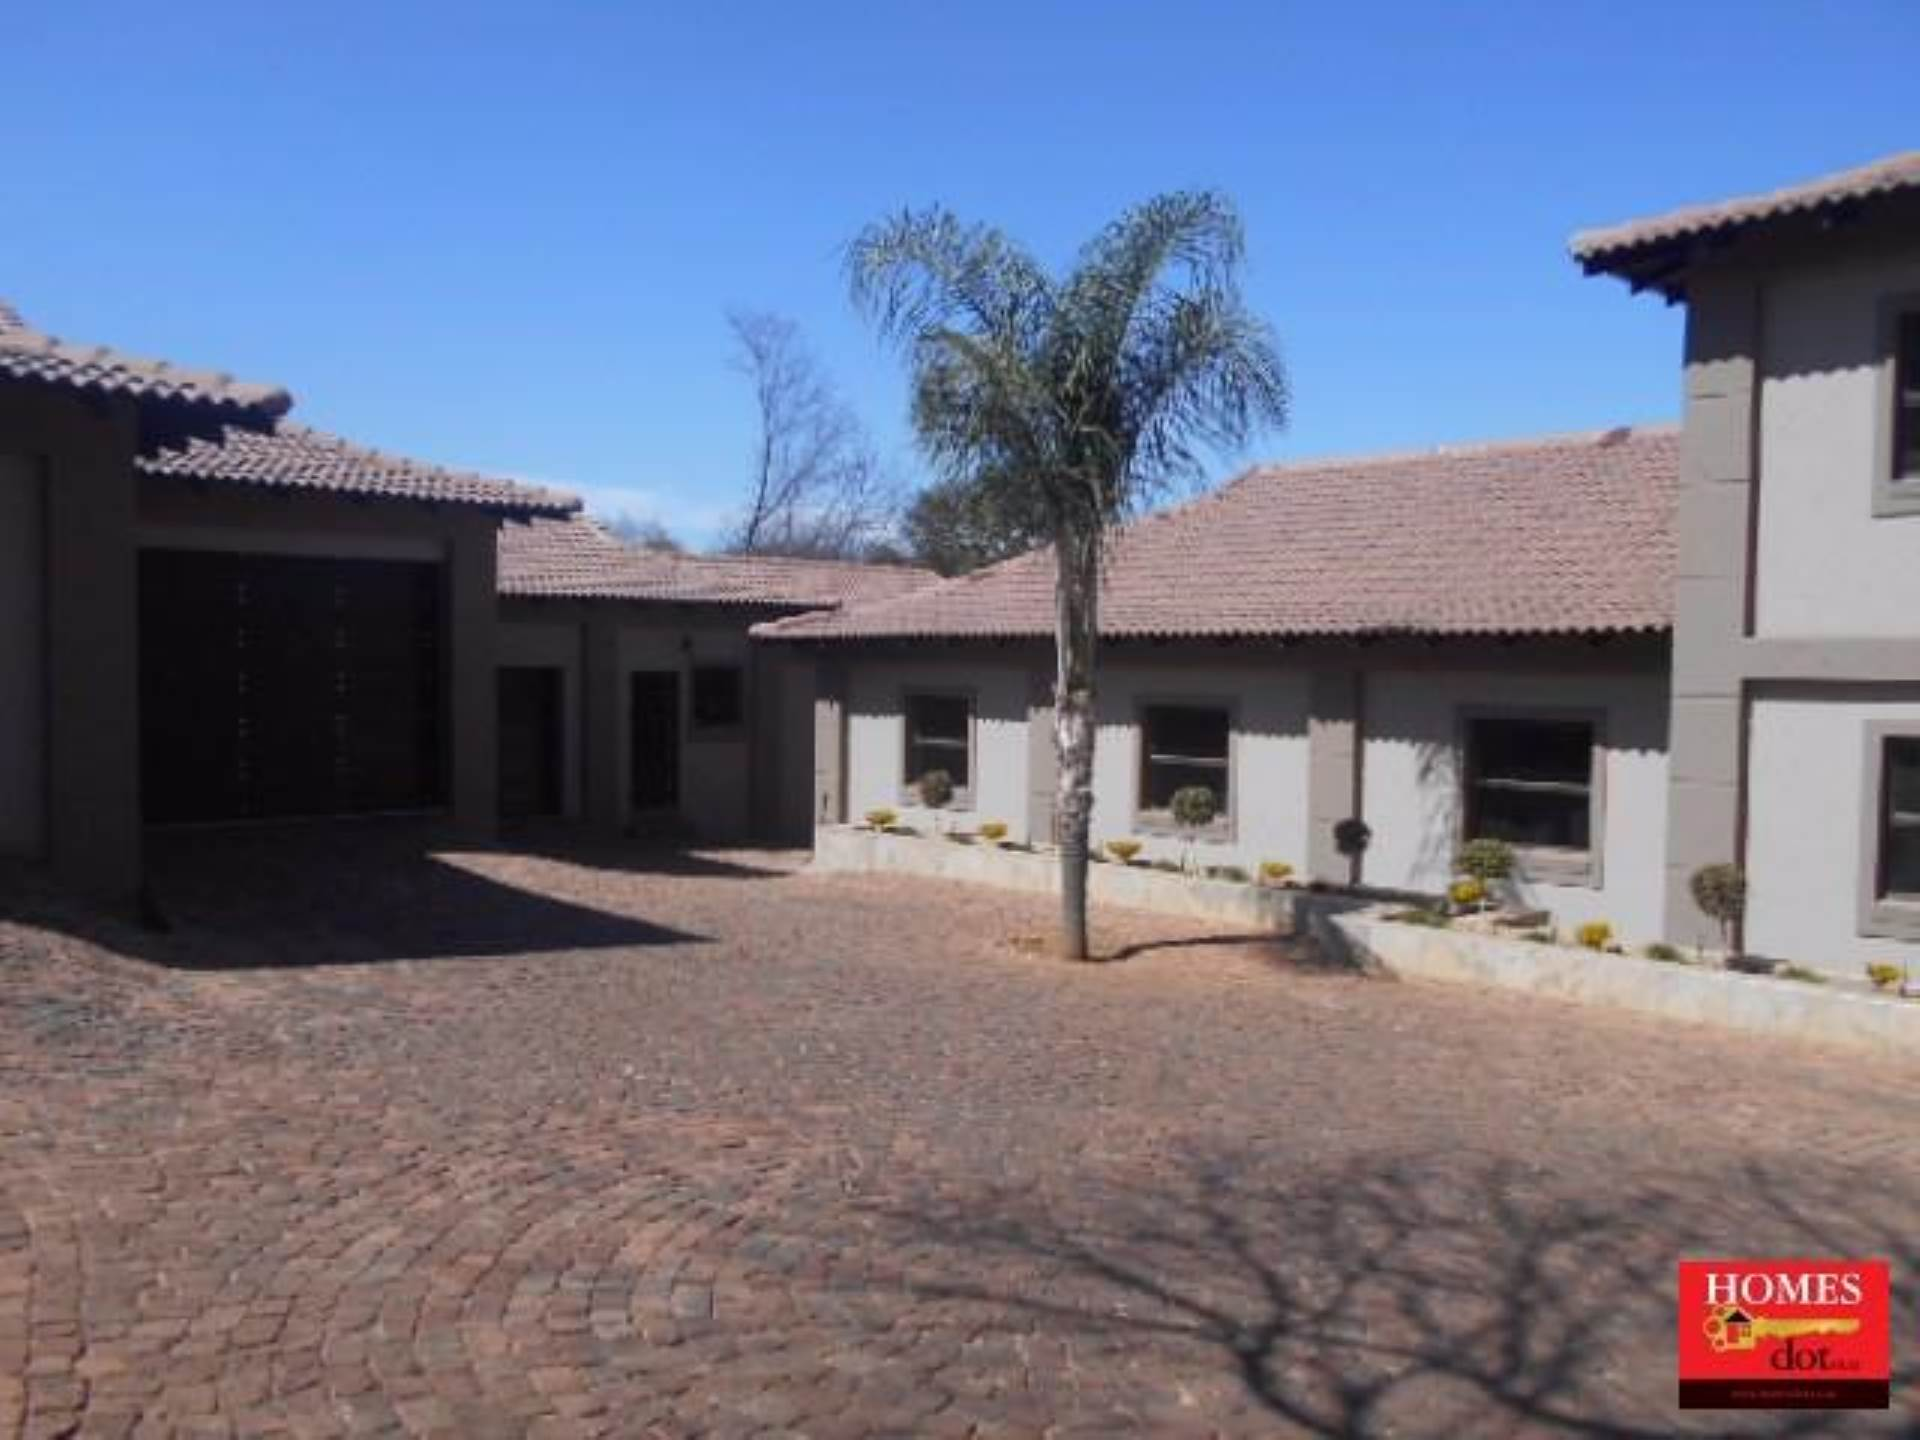 House for sale in val de grace pretoria gauteng for r 5900000